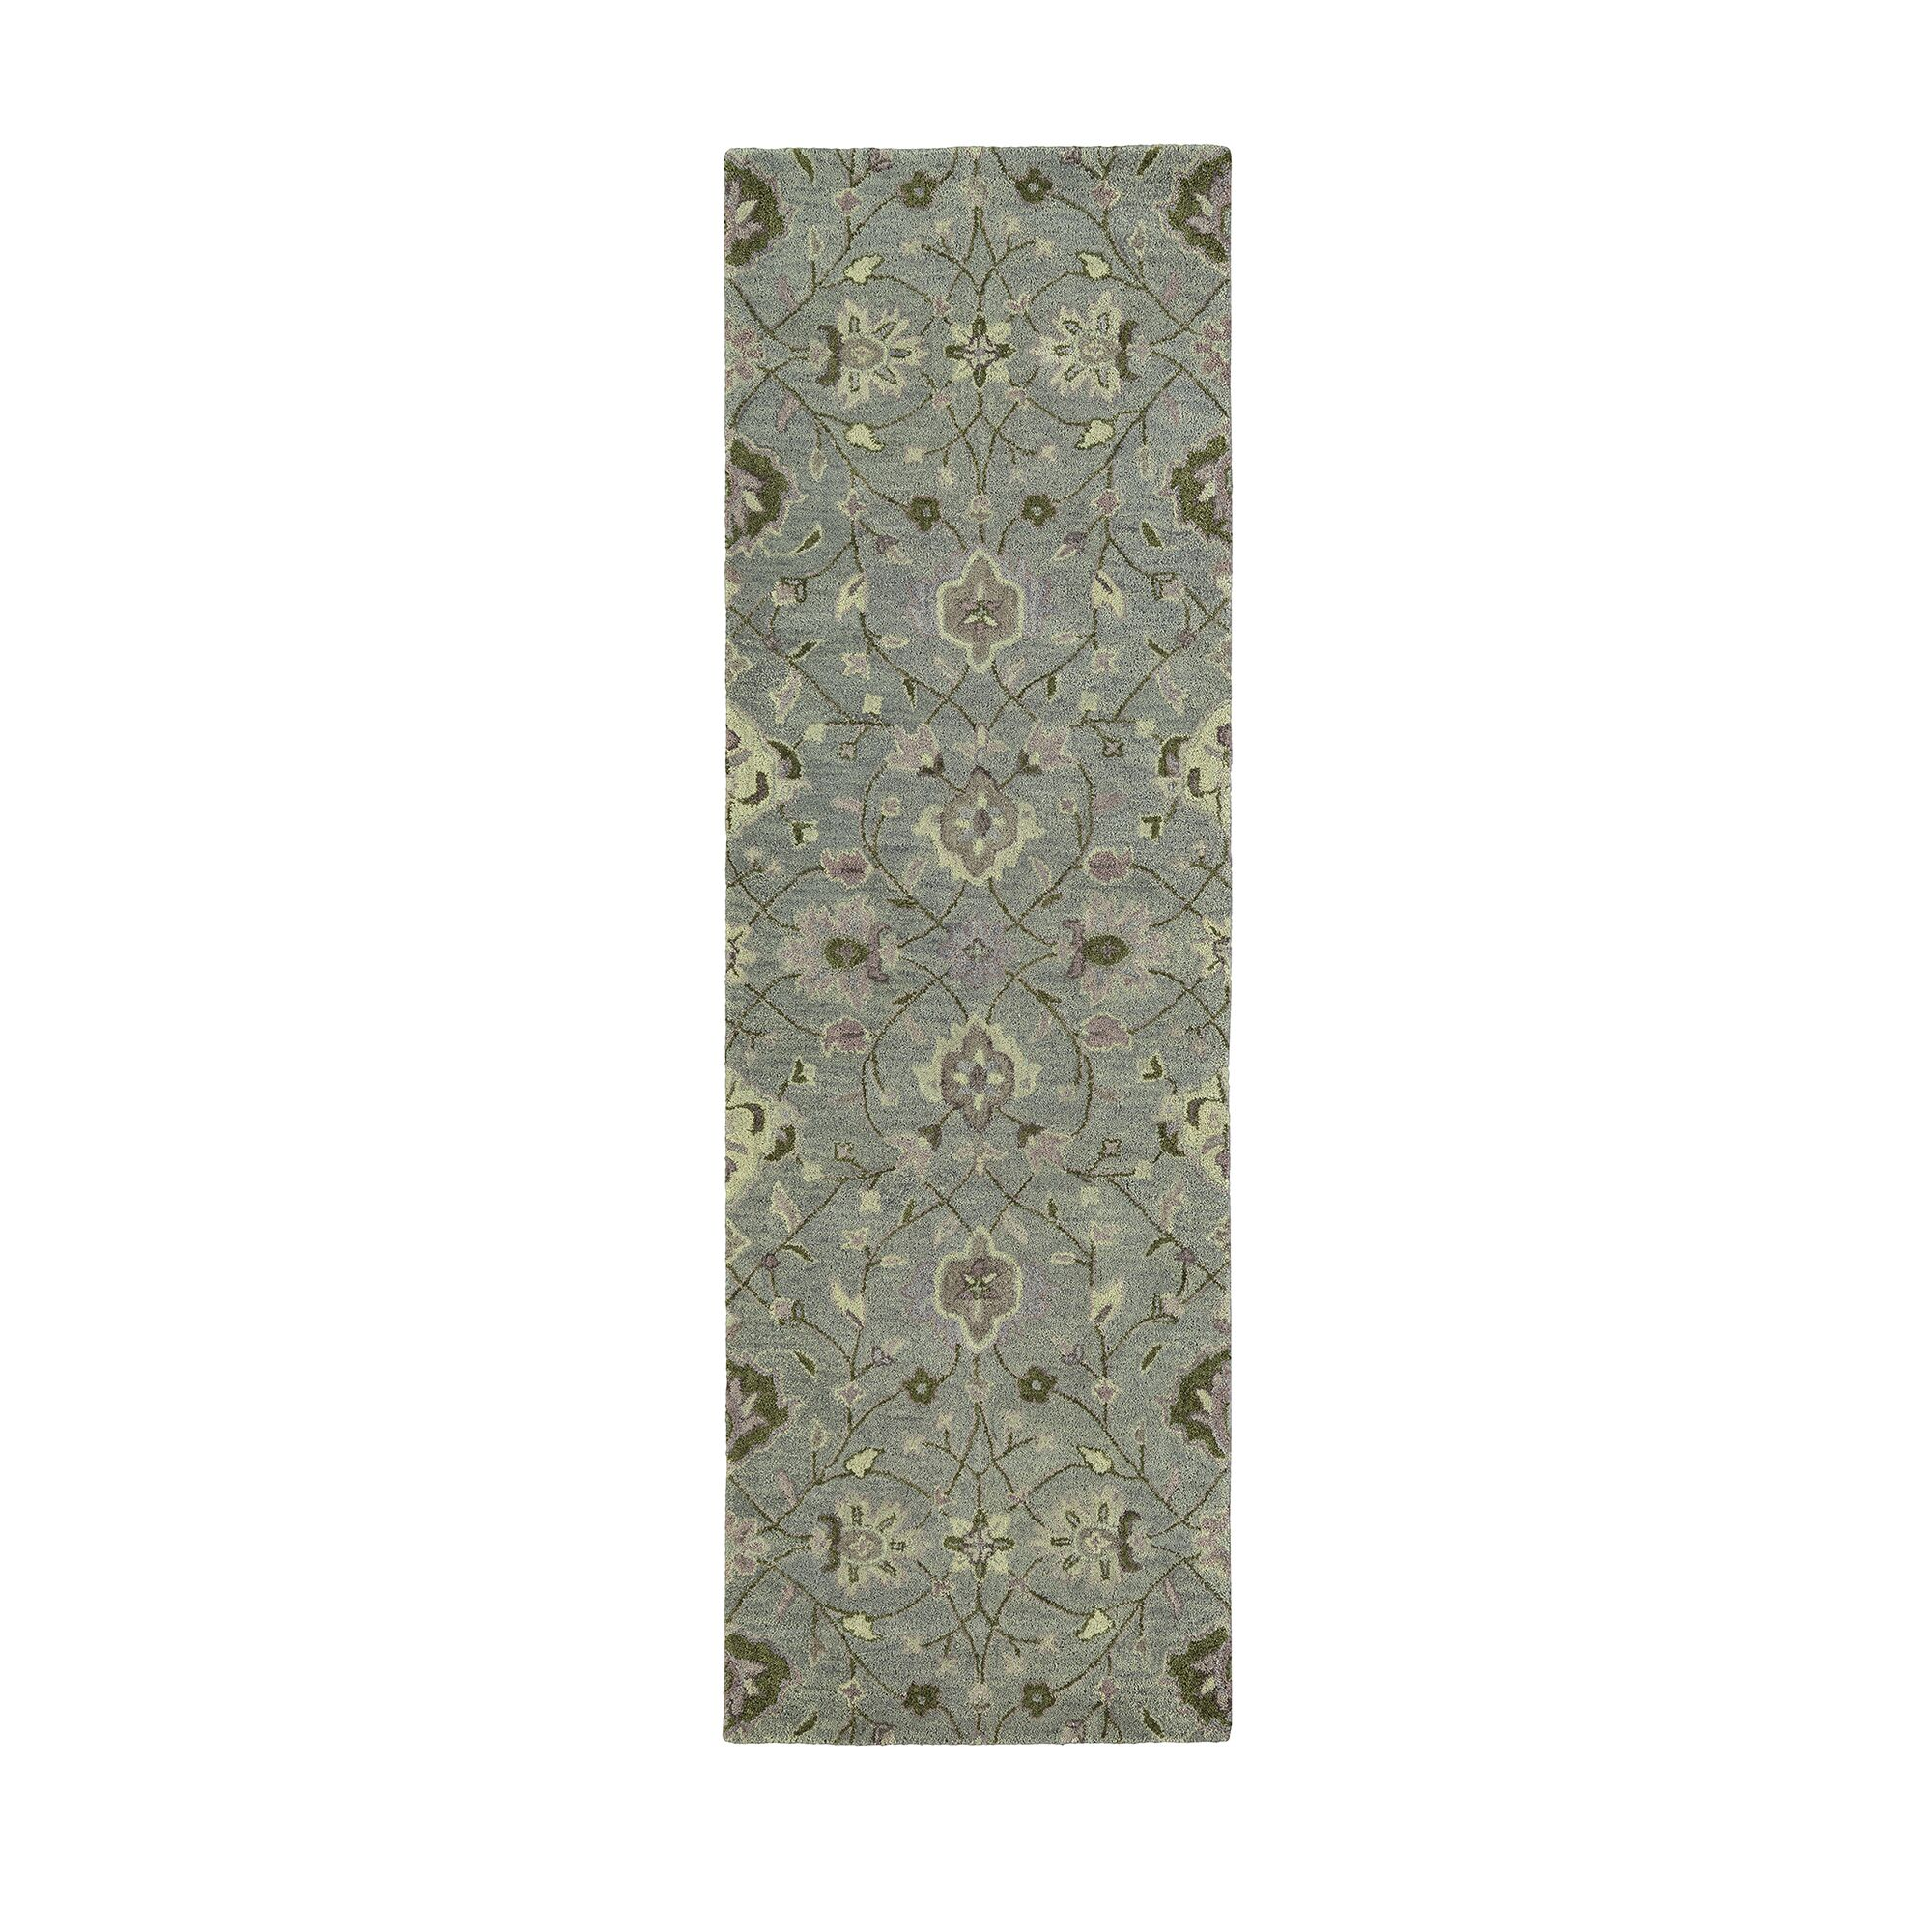 Romarin Hand-Tufted Wool Graphite/Mushroom Area Rug Rug Size: Runner 2'6